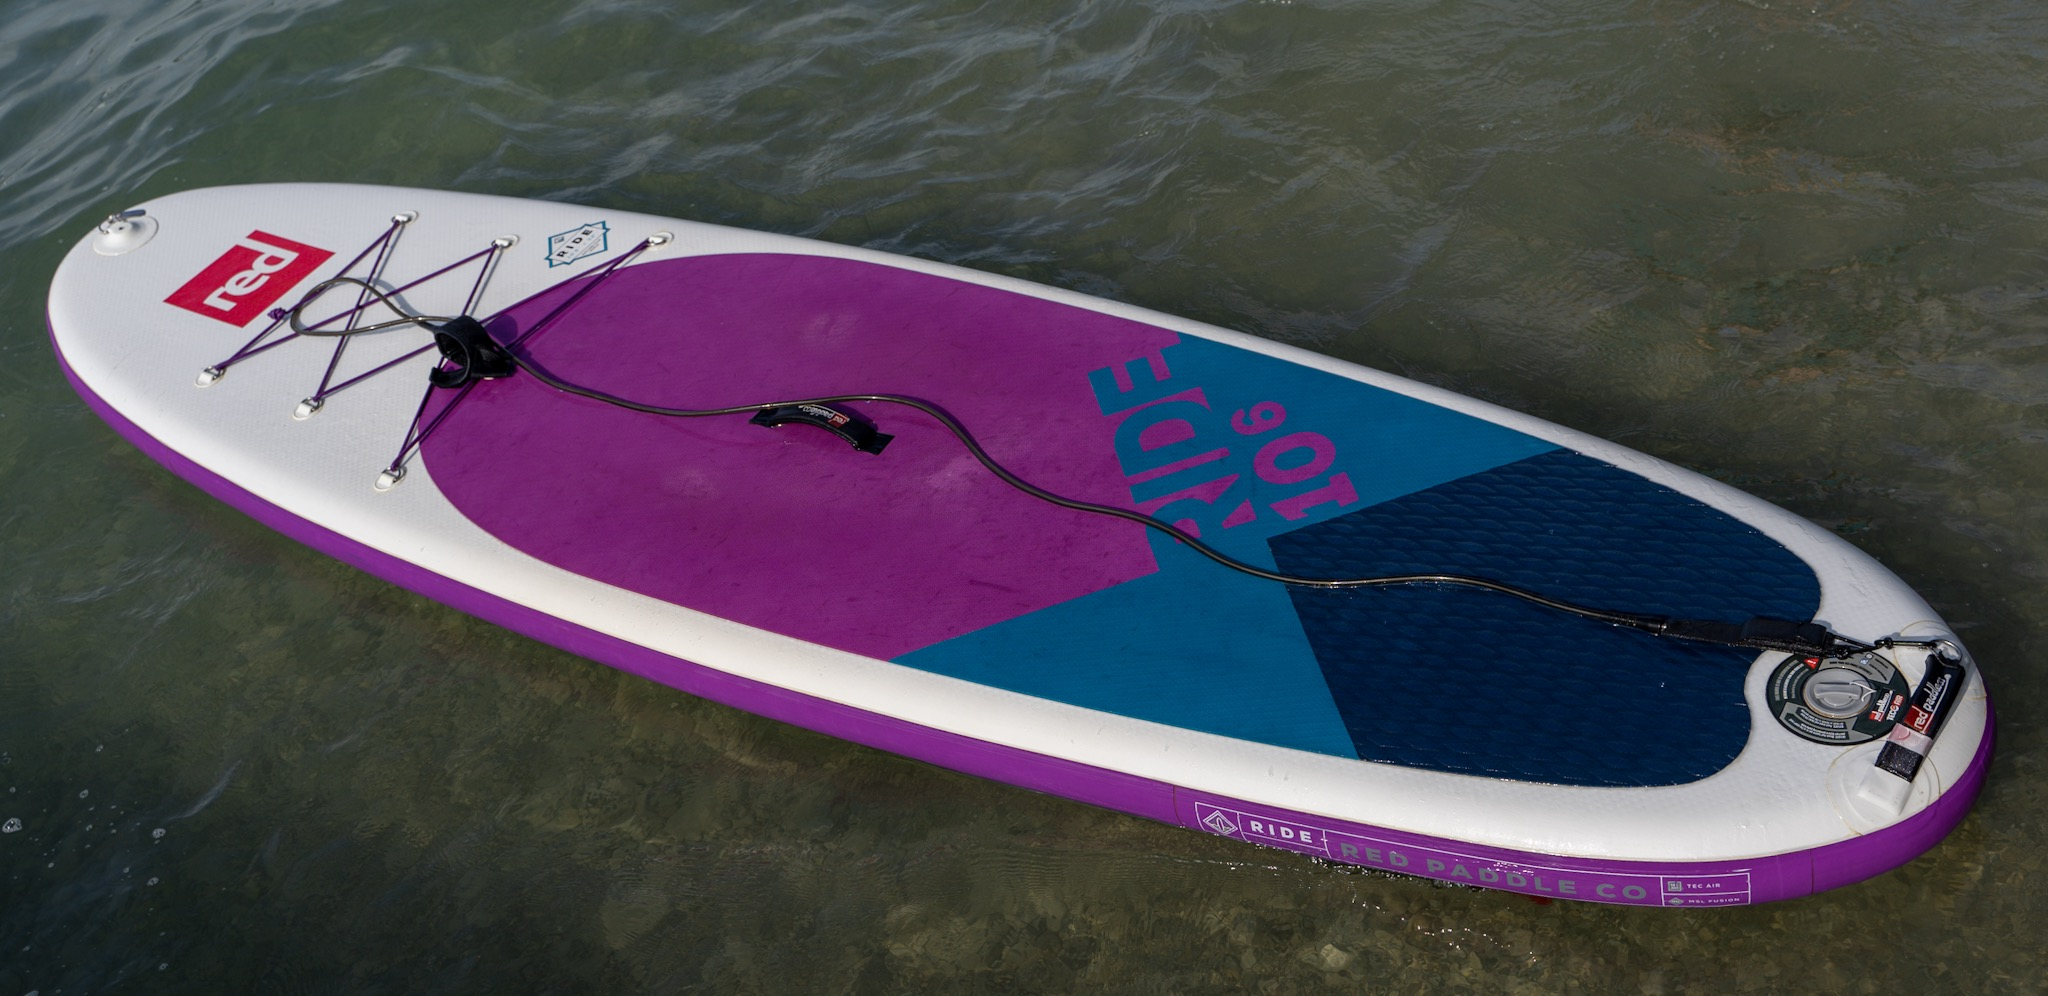 "Red Paddle Ride SE 10'6"" (Testboard)"